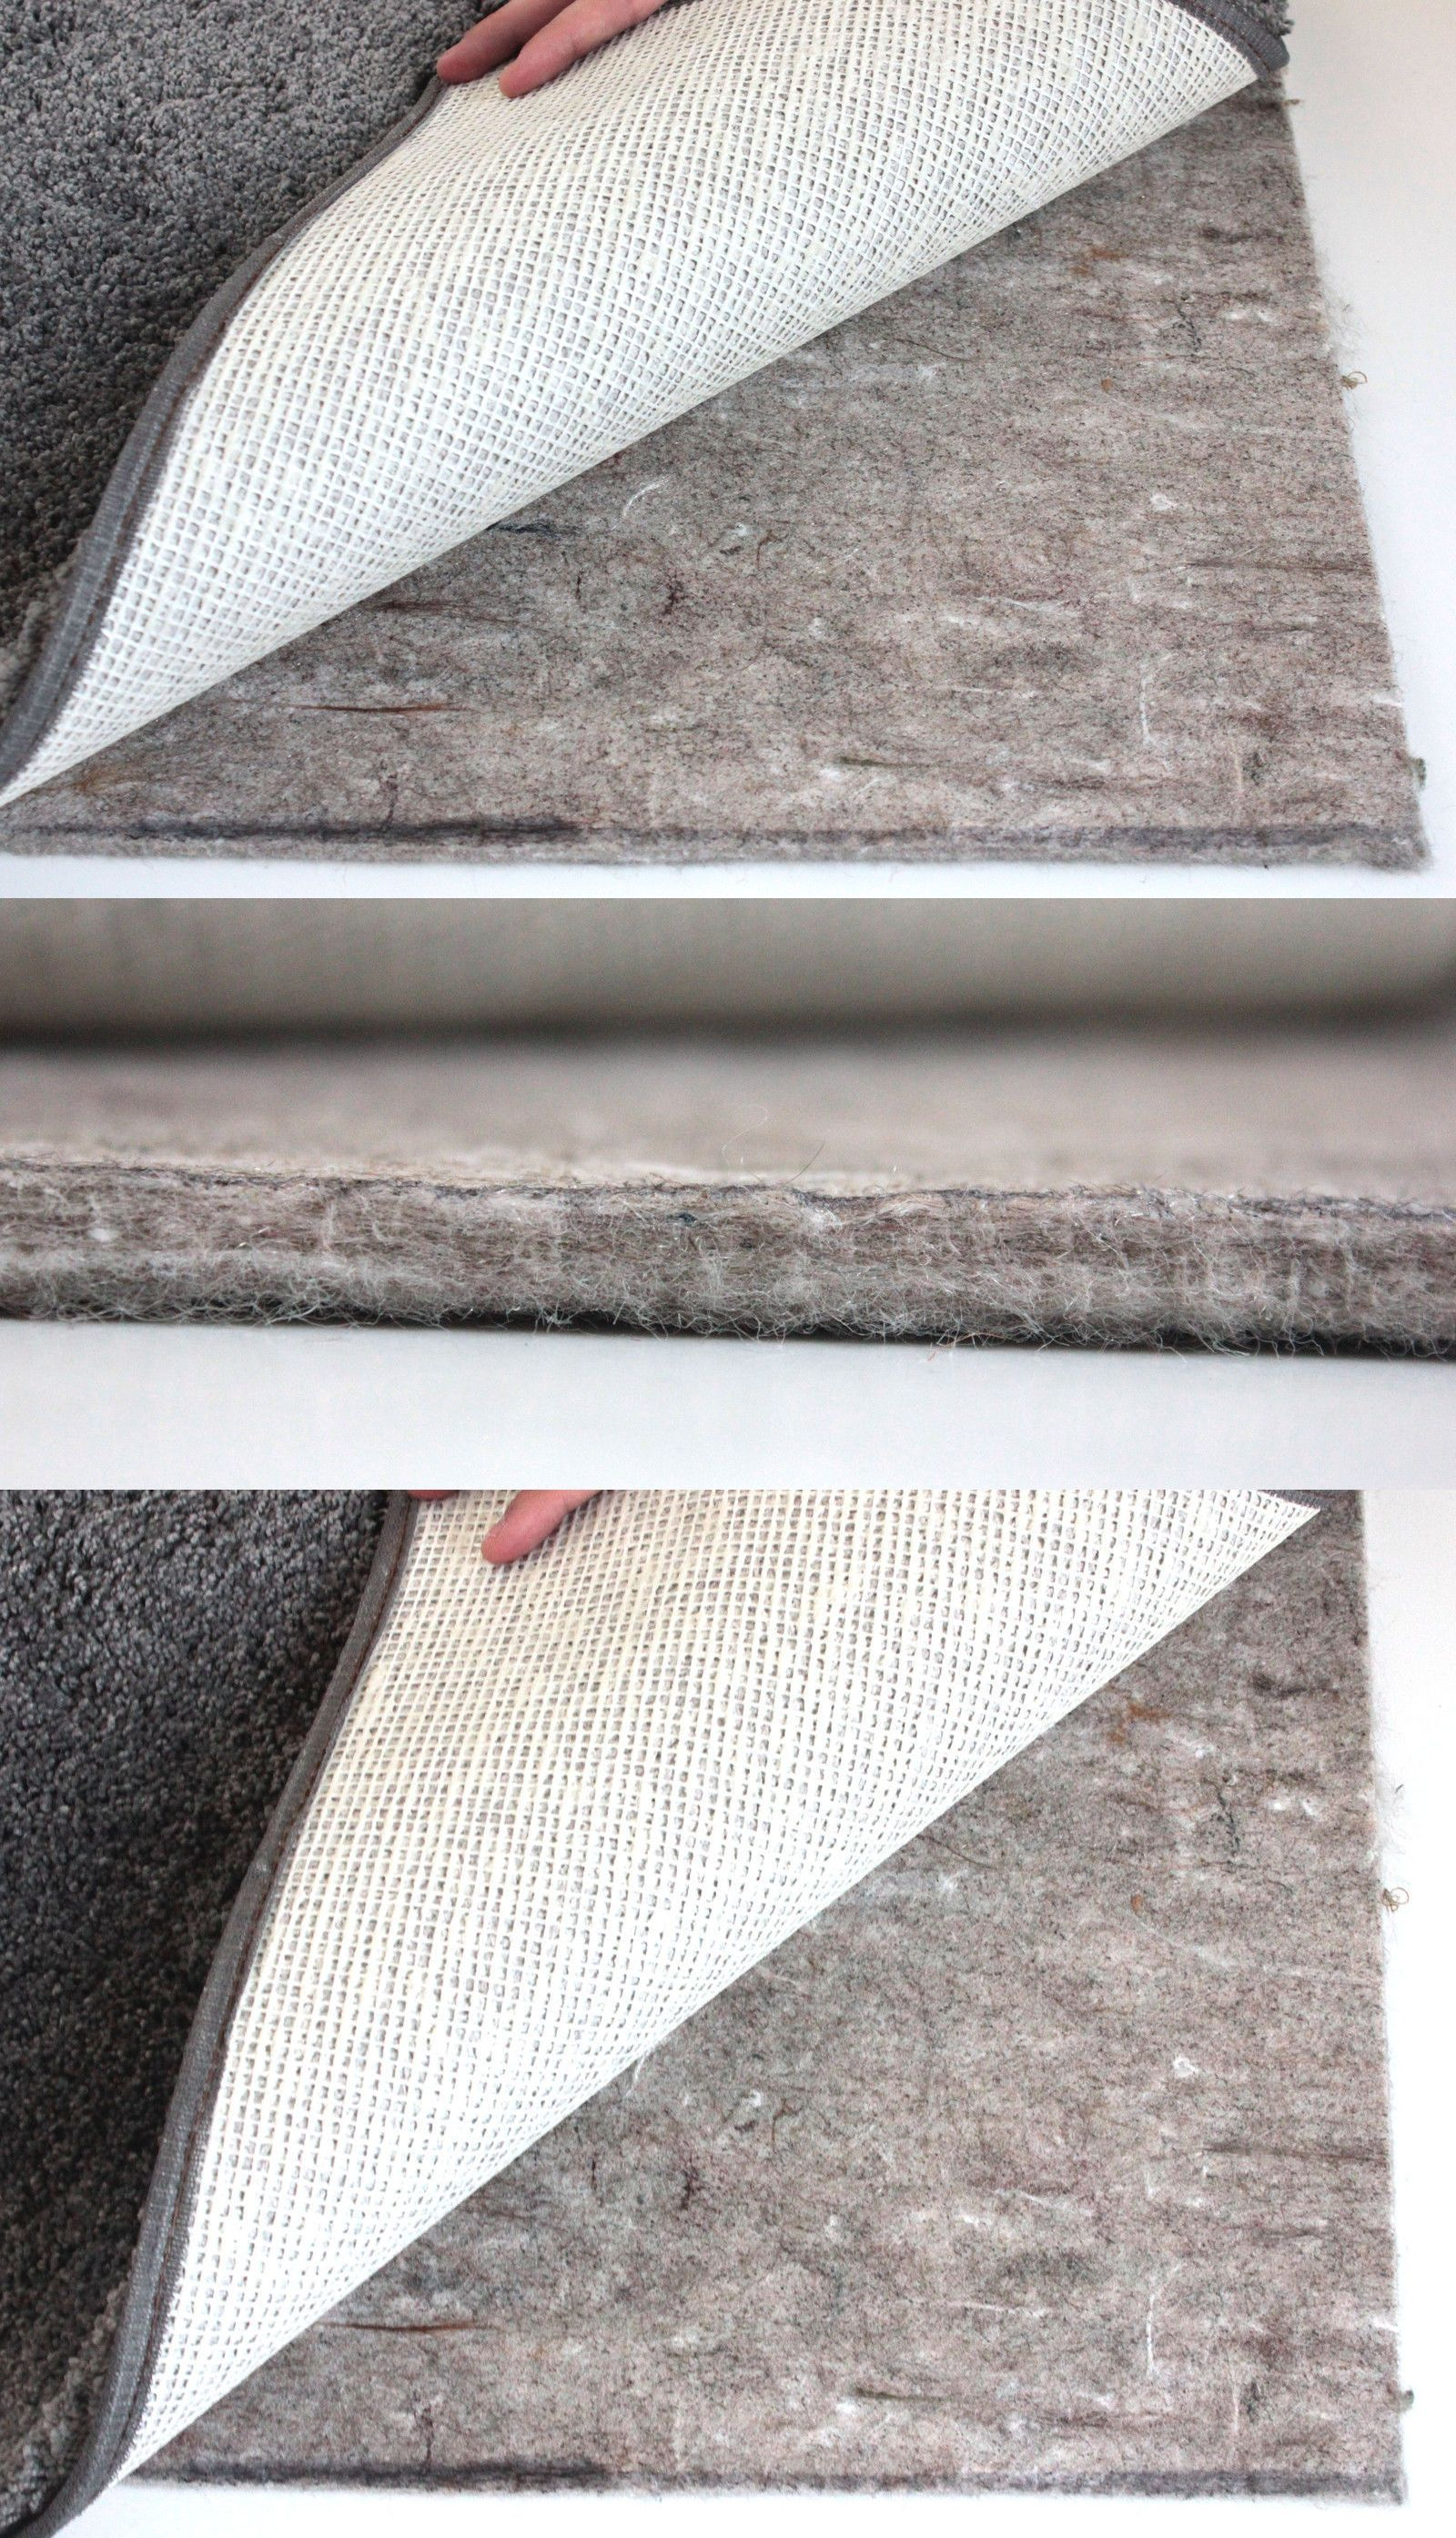 Rug Pads And Accessories 36956 Felt Rug Pad 7 16 Thick For Area